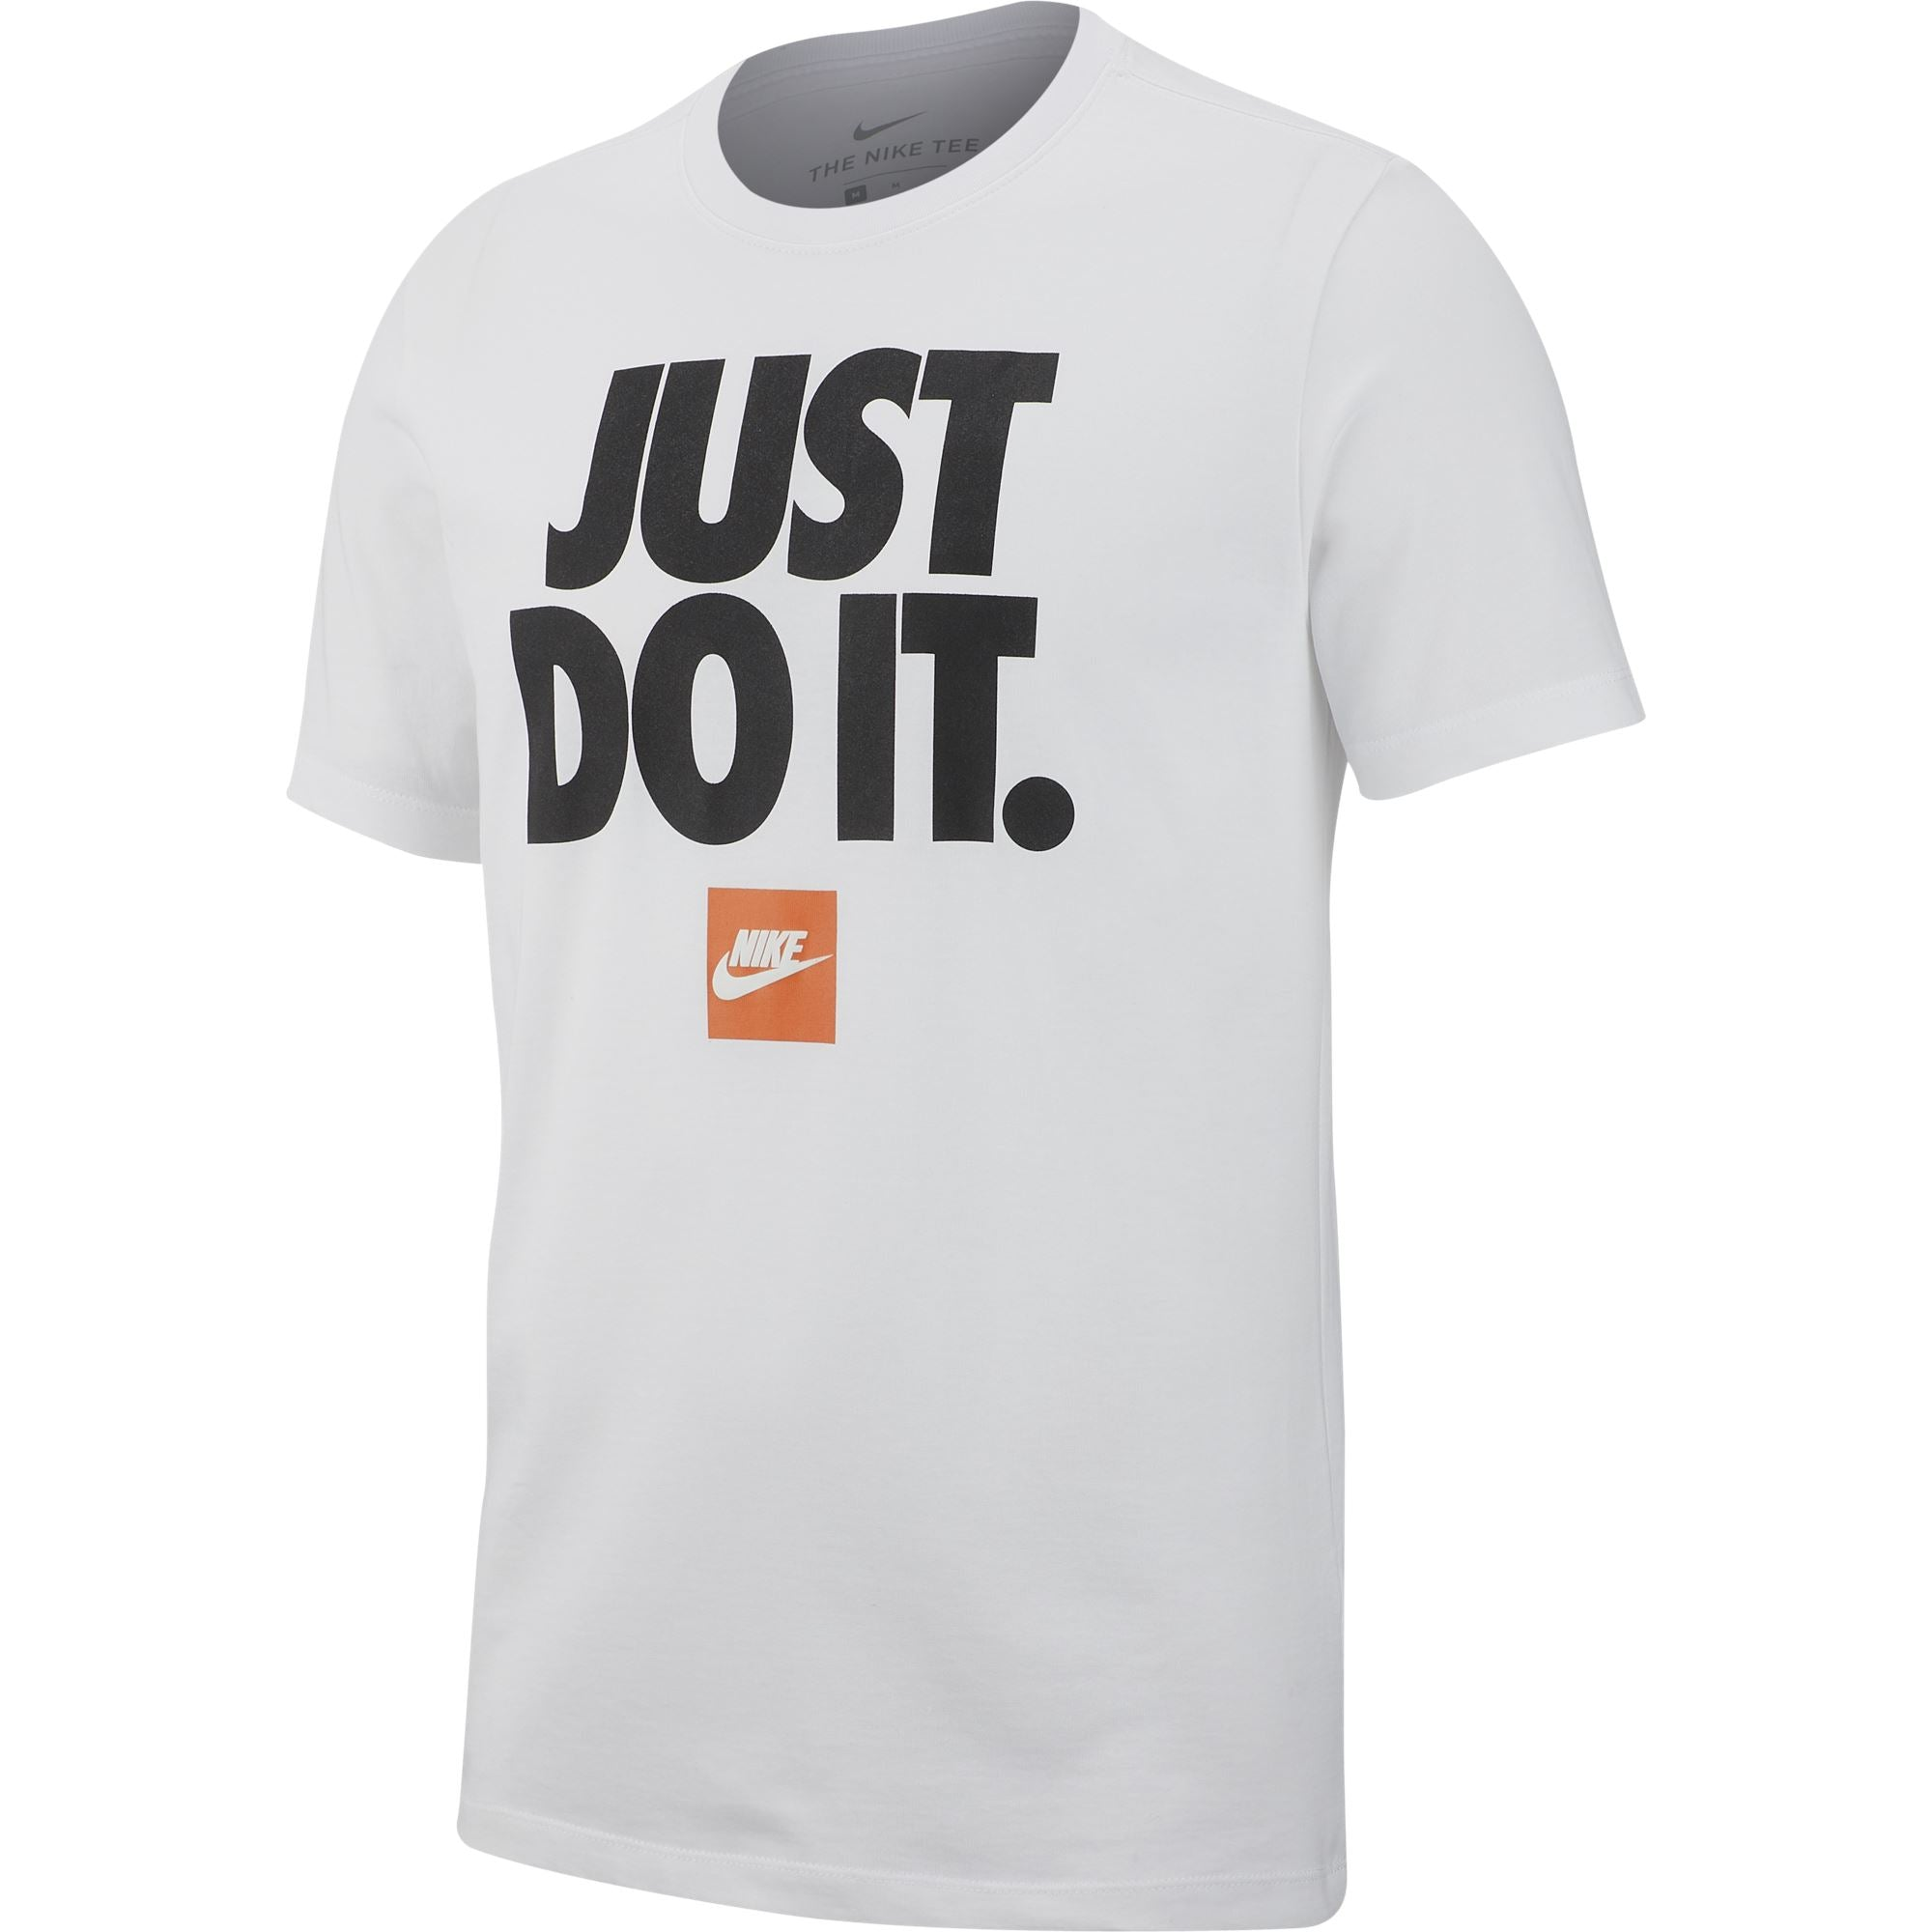 Nike Mens Just Do It Tee - White/Black Q3NIKE Nike